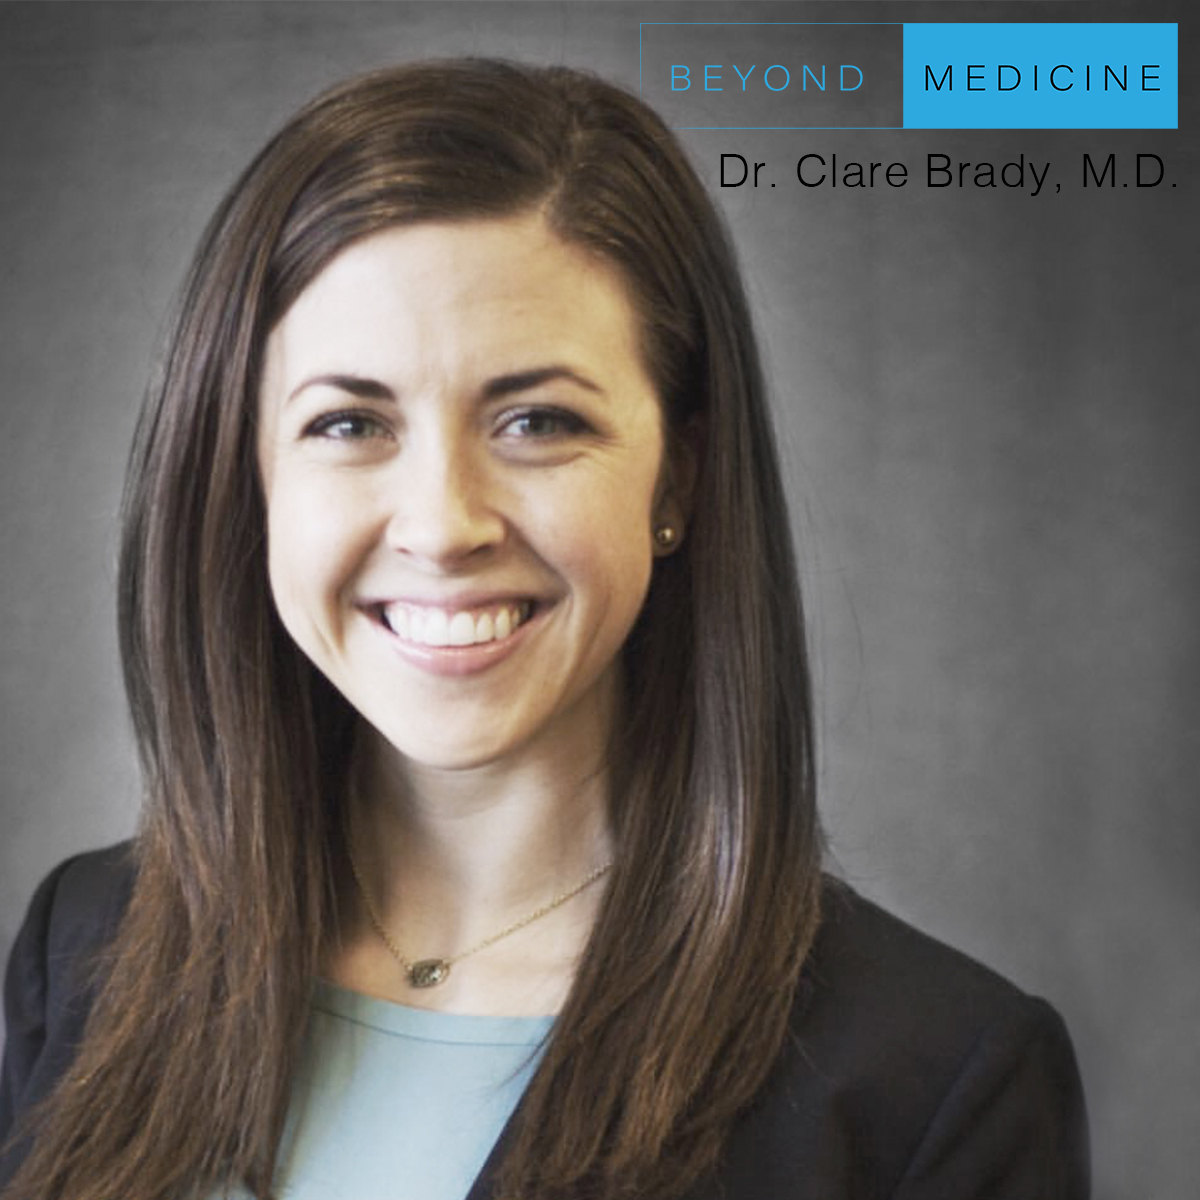 Conquering Eating Disorders - Dr. Clare Brady is a Family Medicine resident with a special interest in Integrative Medicine. She shares with us her personal journey and insights of overcoming a eating disorder.